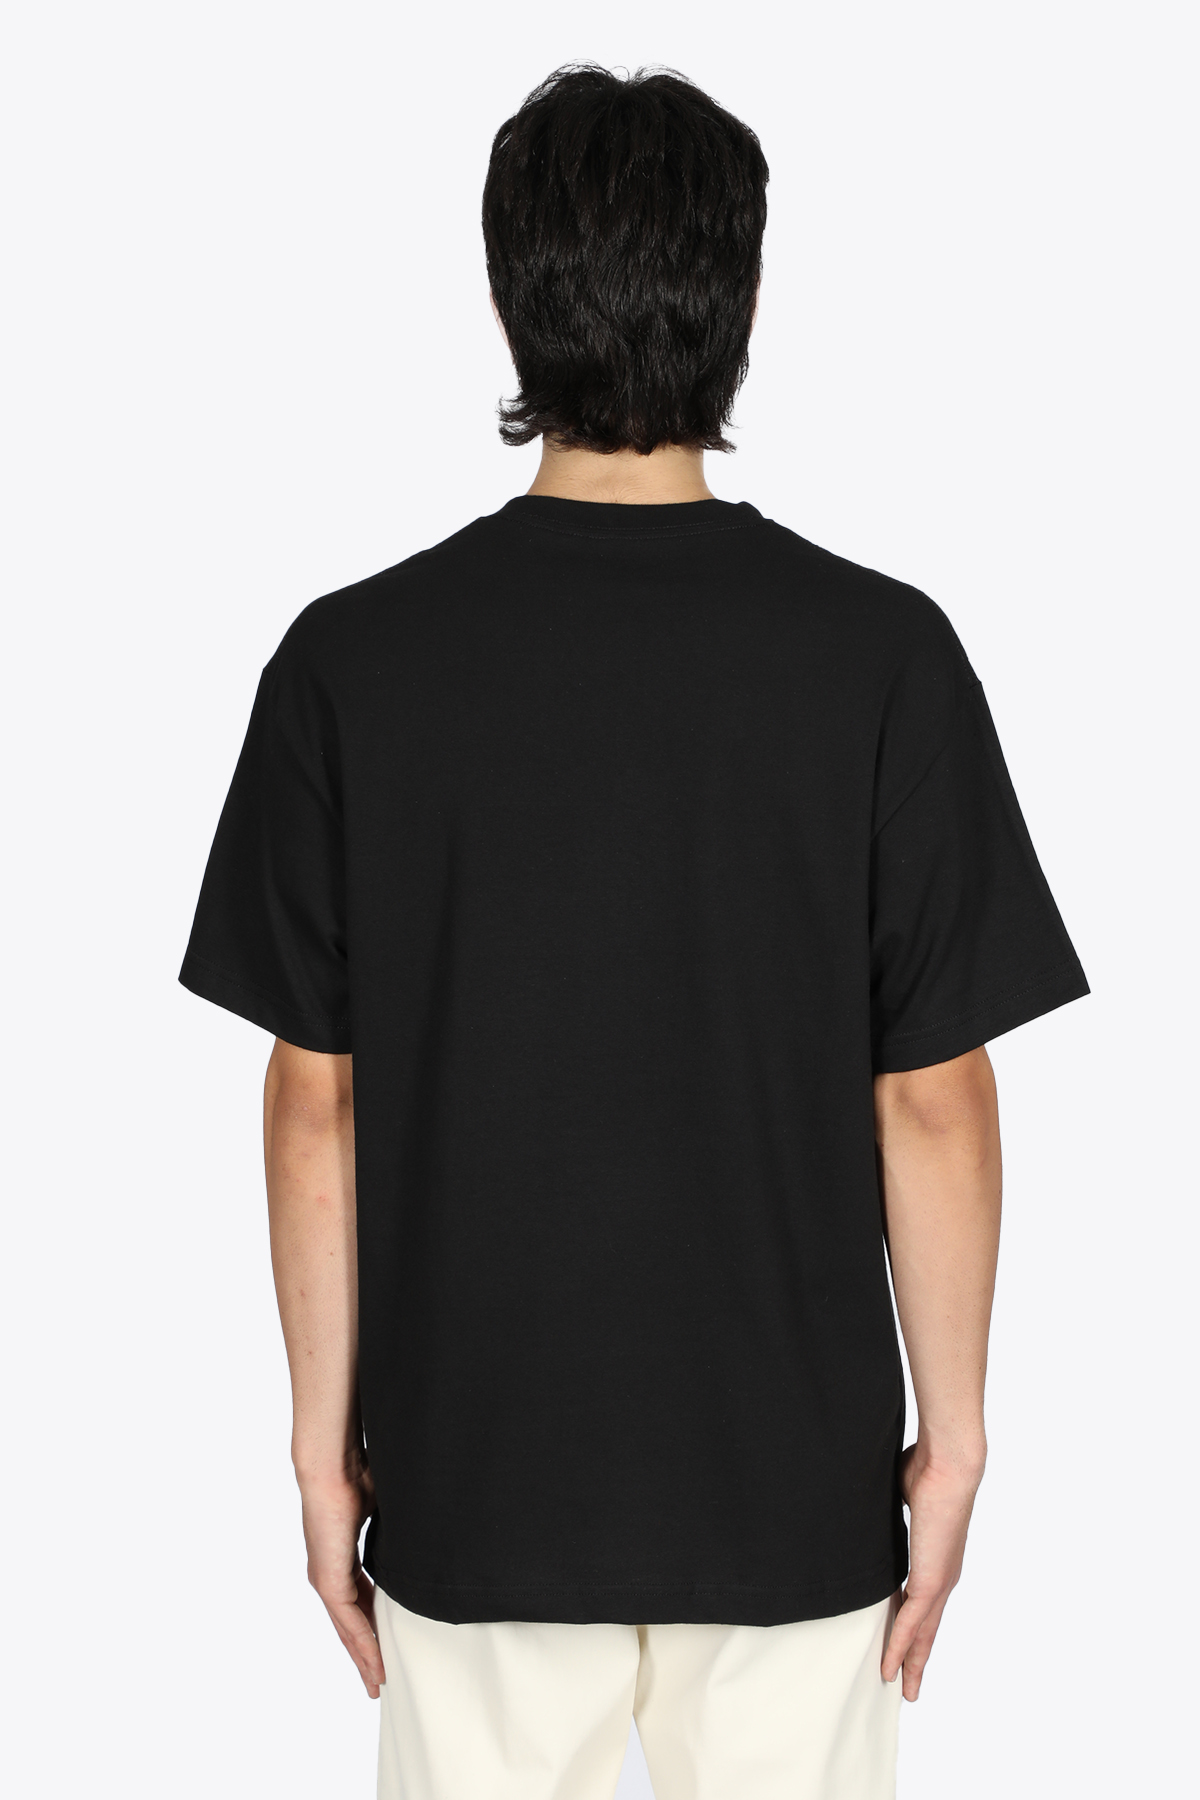 CORE EMBROIDERED T-SHIRT PLEASURES   8   P21F031 CORE EMBROIDERED T-SHIRTBLACK